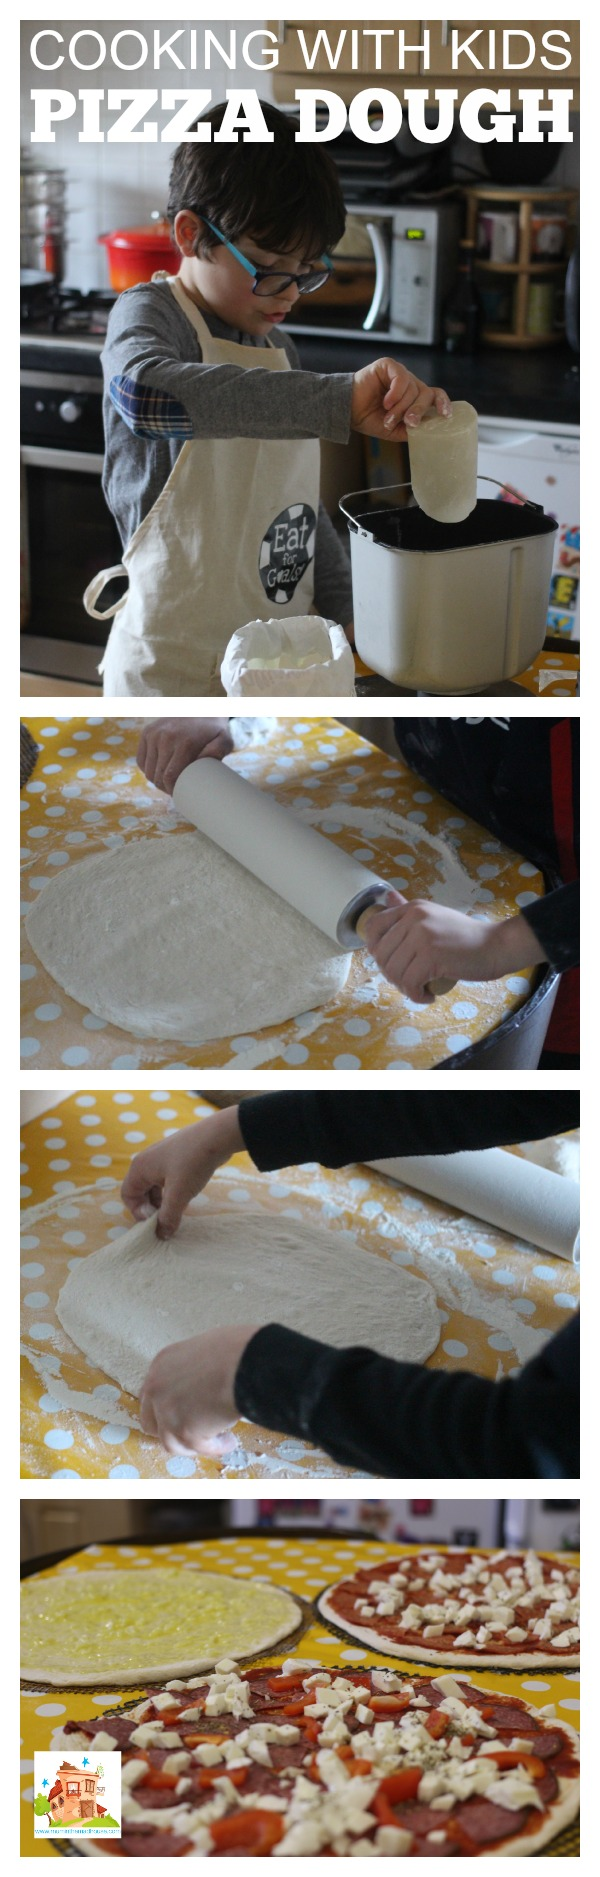 pizza dough cooking with kids